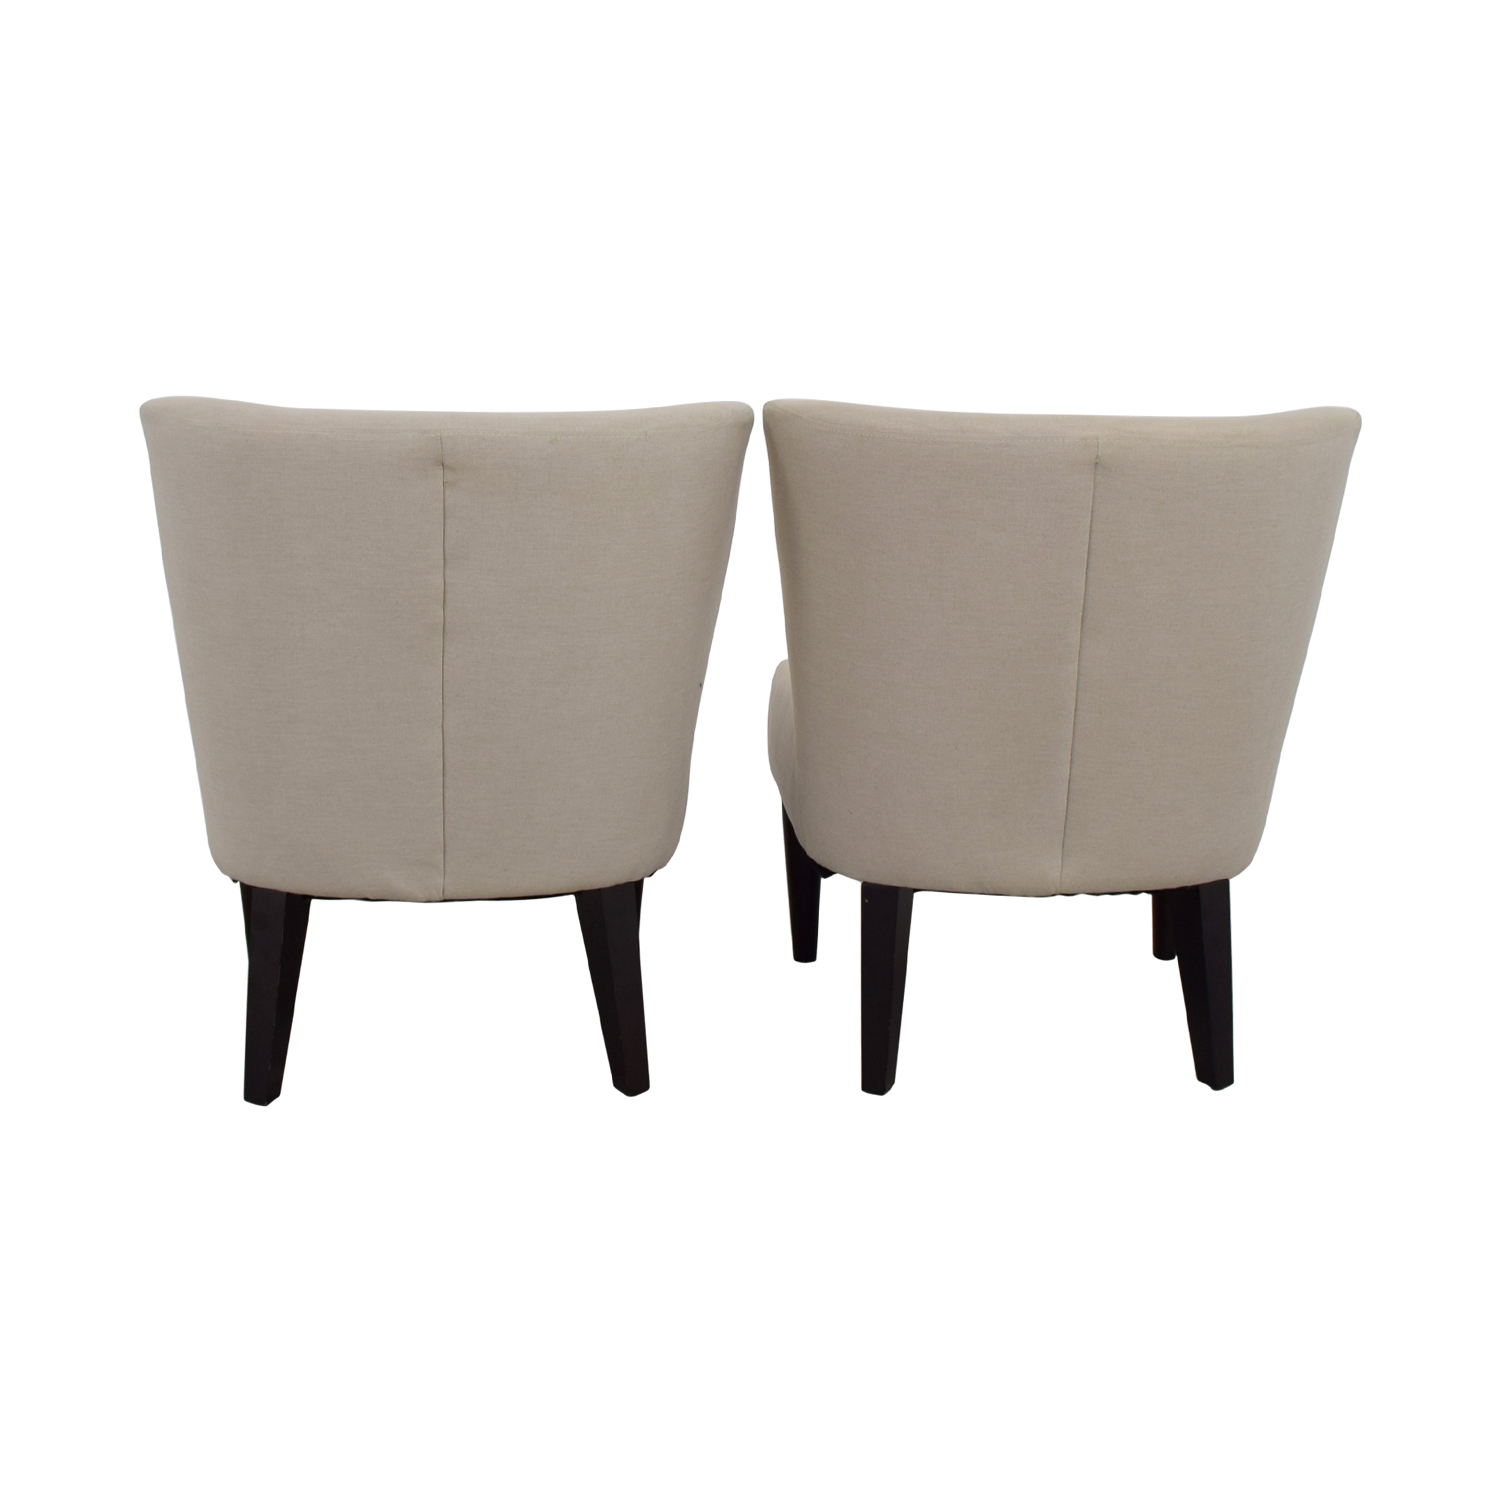 West Elm West Elm Retro Cream Chairs on sale